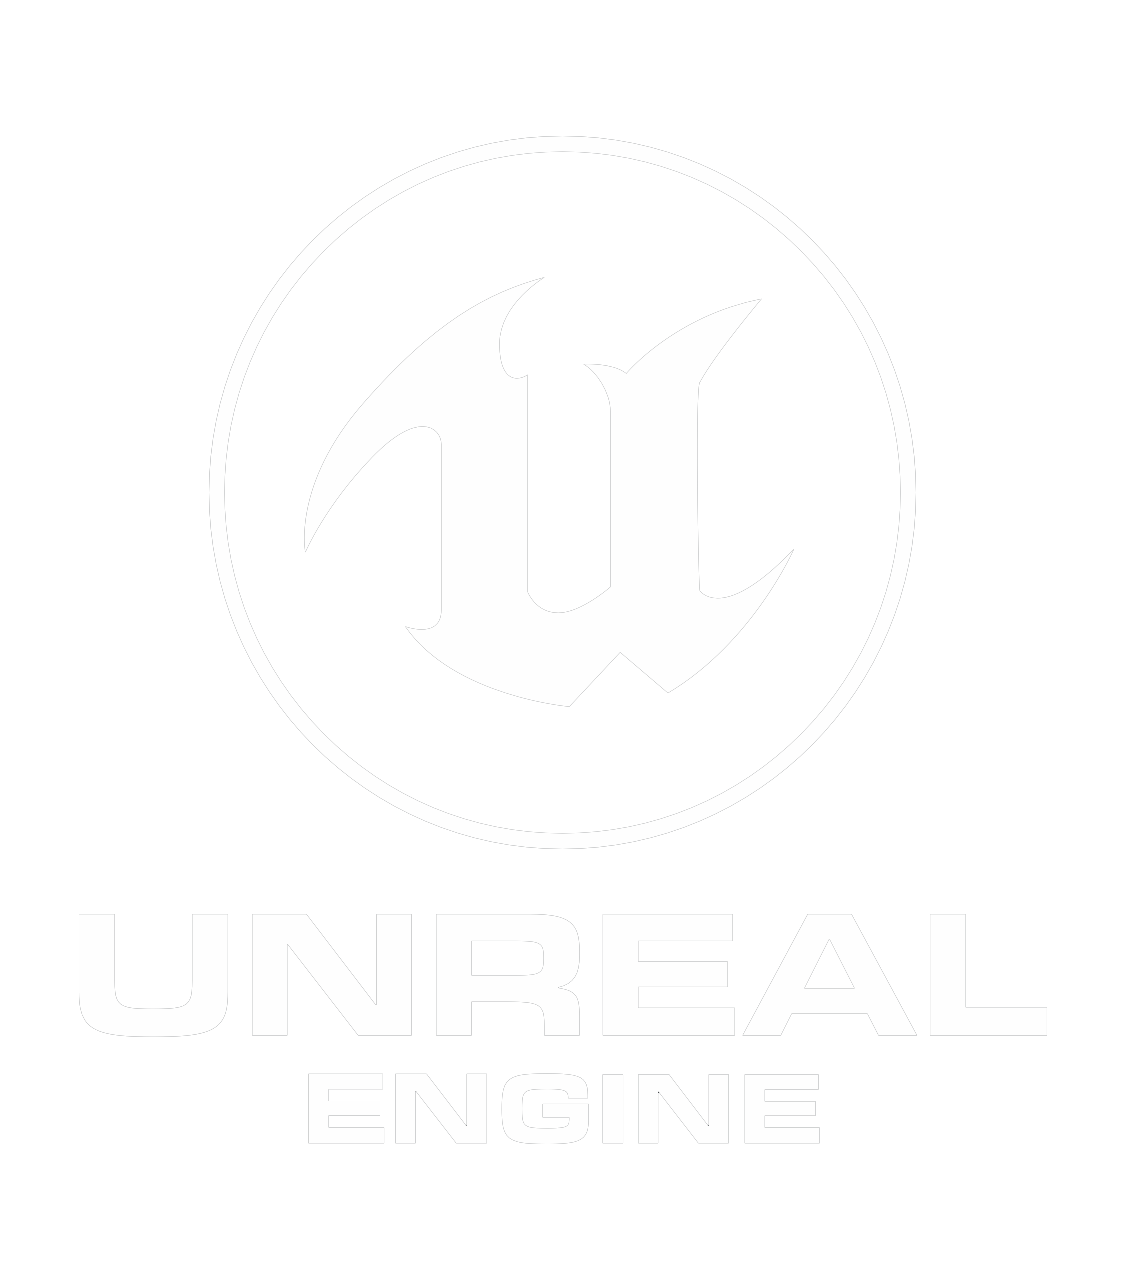 Unreal-Engine 4